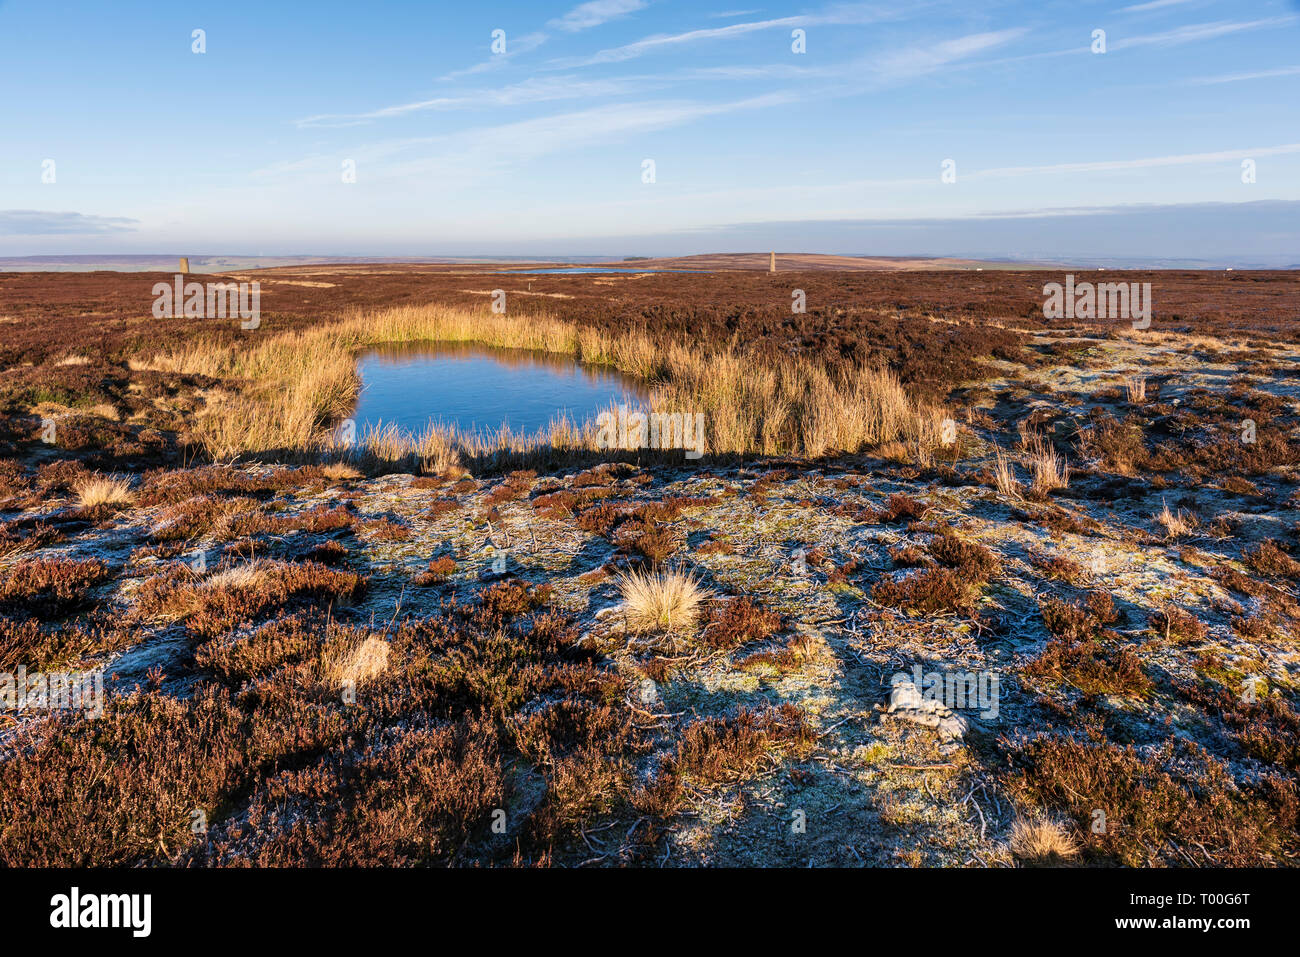 On the remote landscape of the Durham Moors in the North Pennines a peat pond in boggy upland heather moorland - Stock Image